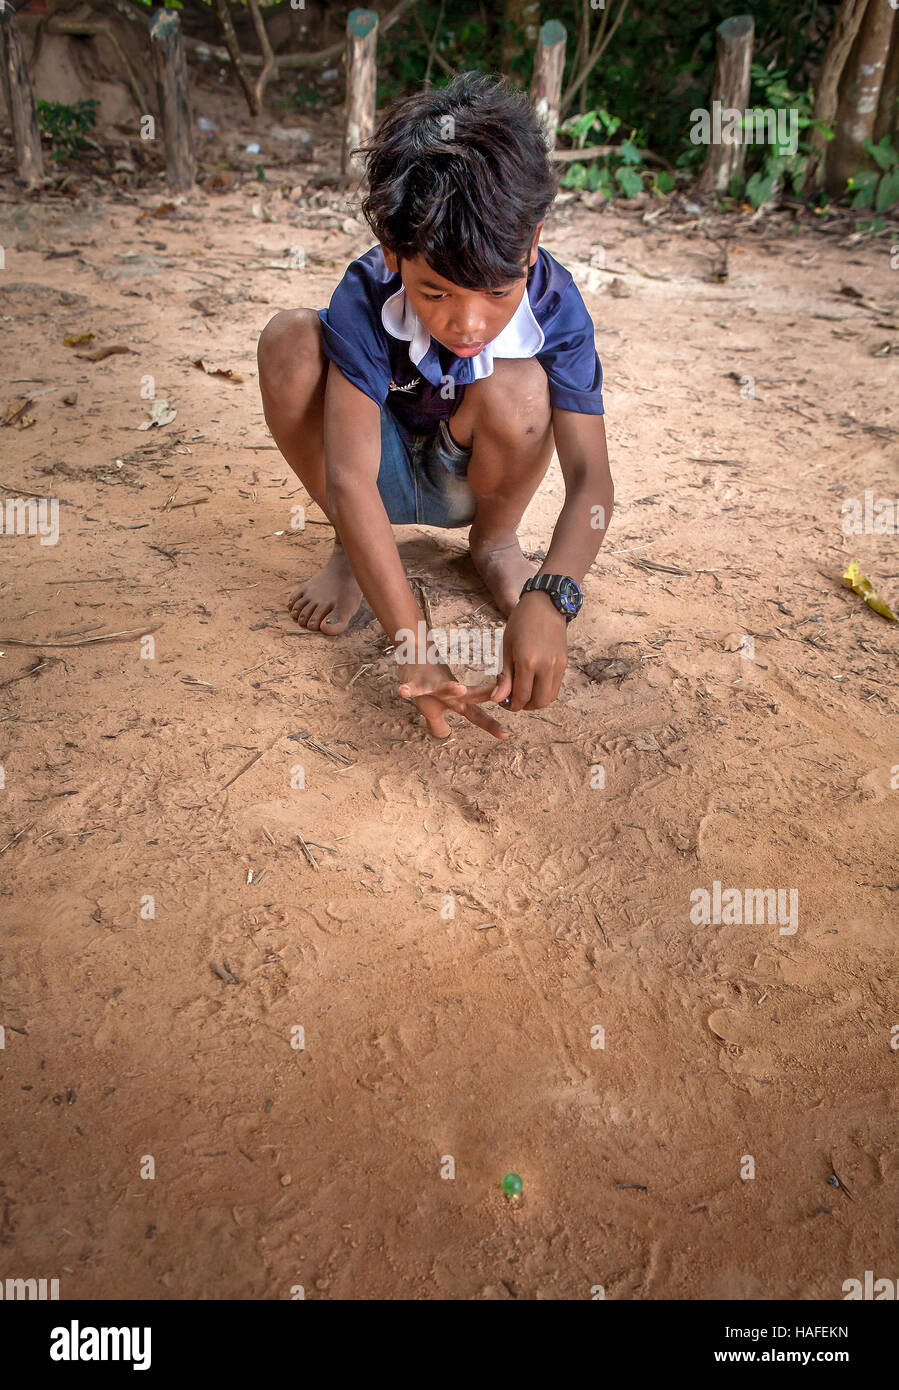 Young Cambodian village boy near Banteay Srei, Cambodia plays marbles in the dirt. - Stock Image